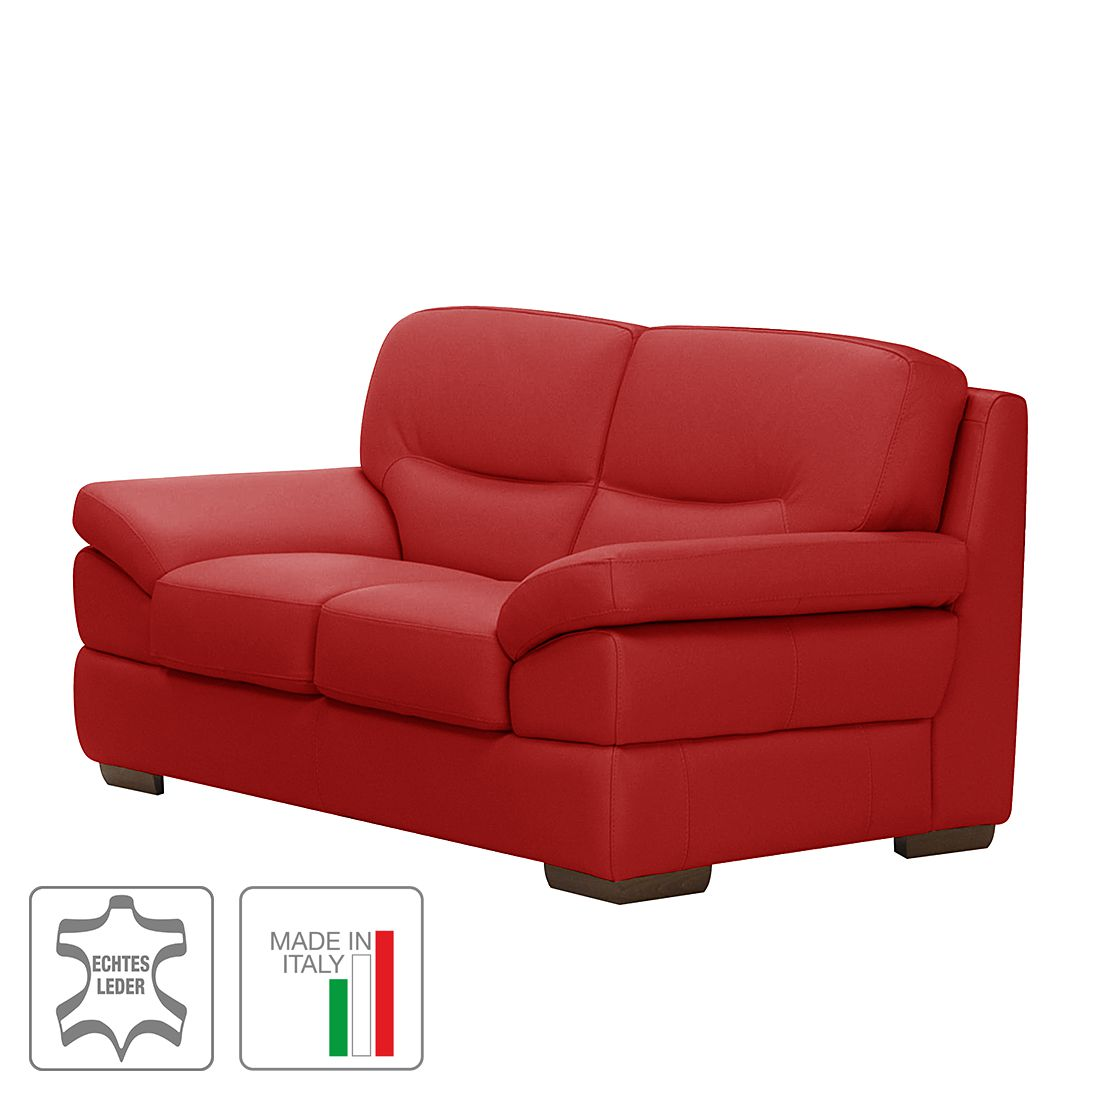 sofa brunet 2 sitzer echtleder rot trend italiano kaufen. Black Bedroom Furniture Sets. Home Design Ideas